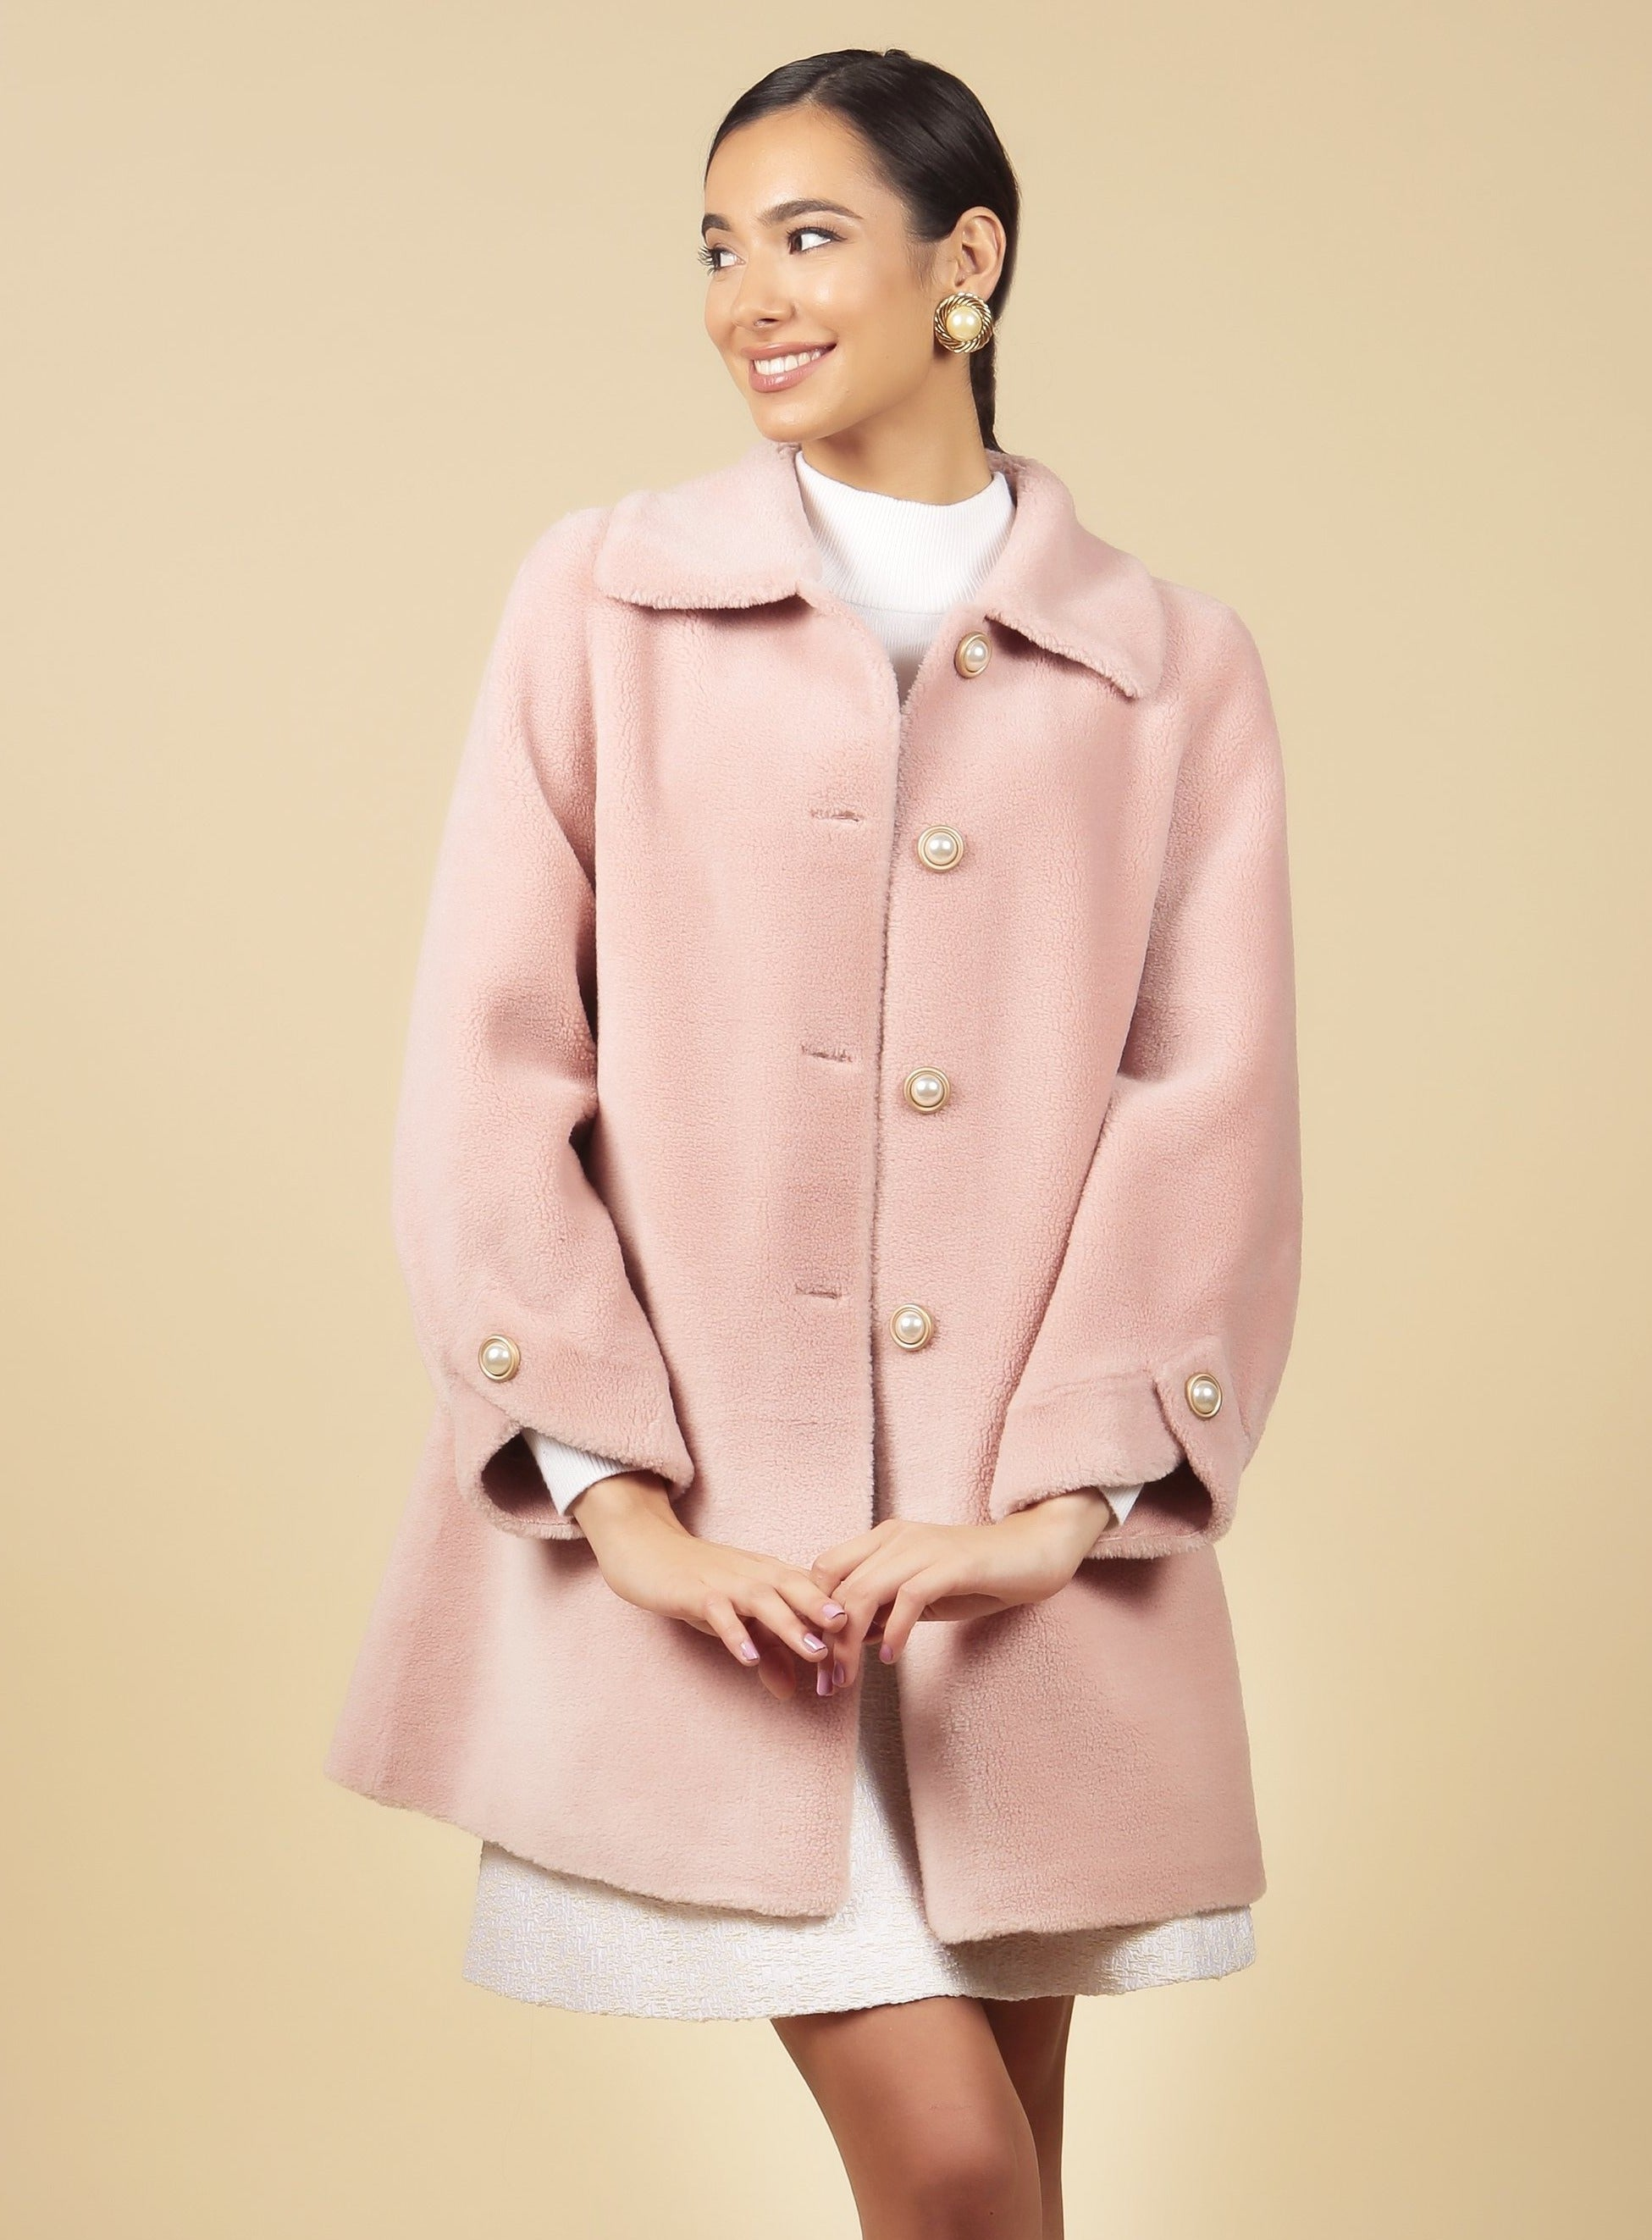 'The Last Time I Saw Paris' 100% Wool Coat in Rosa